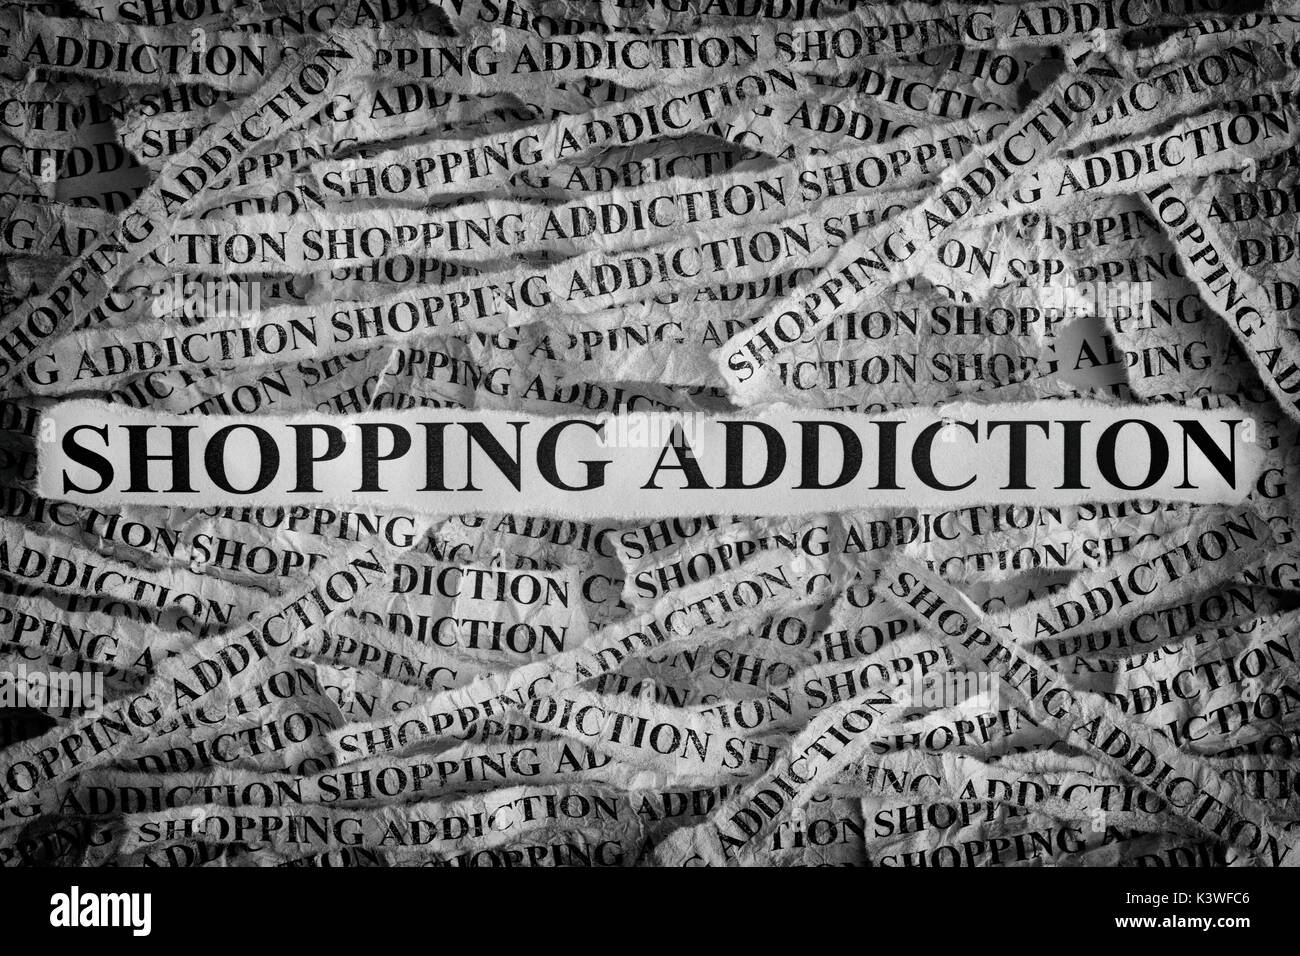 Shopping Addiction. Torn pieces of paper with the words Shopping Addiction. Concept Image. Black and White. Closeup. - Stock Image